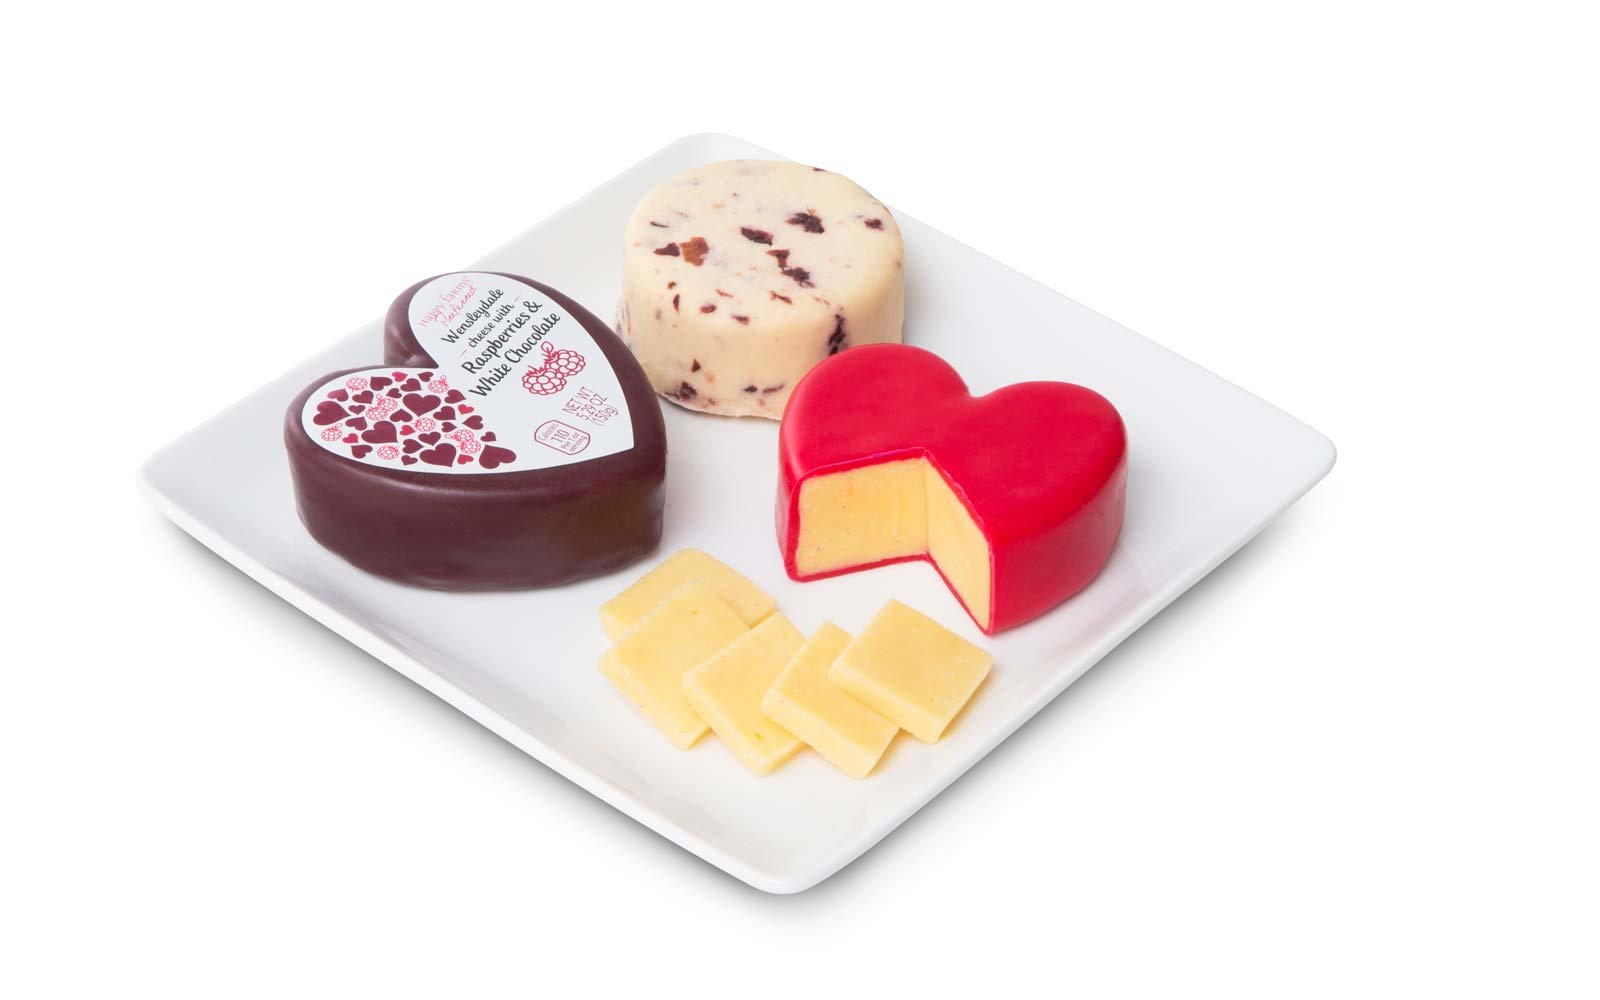 The Happy Farms Preferred Valentine's Day Cheese Assortment